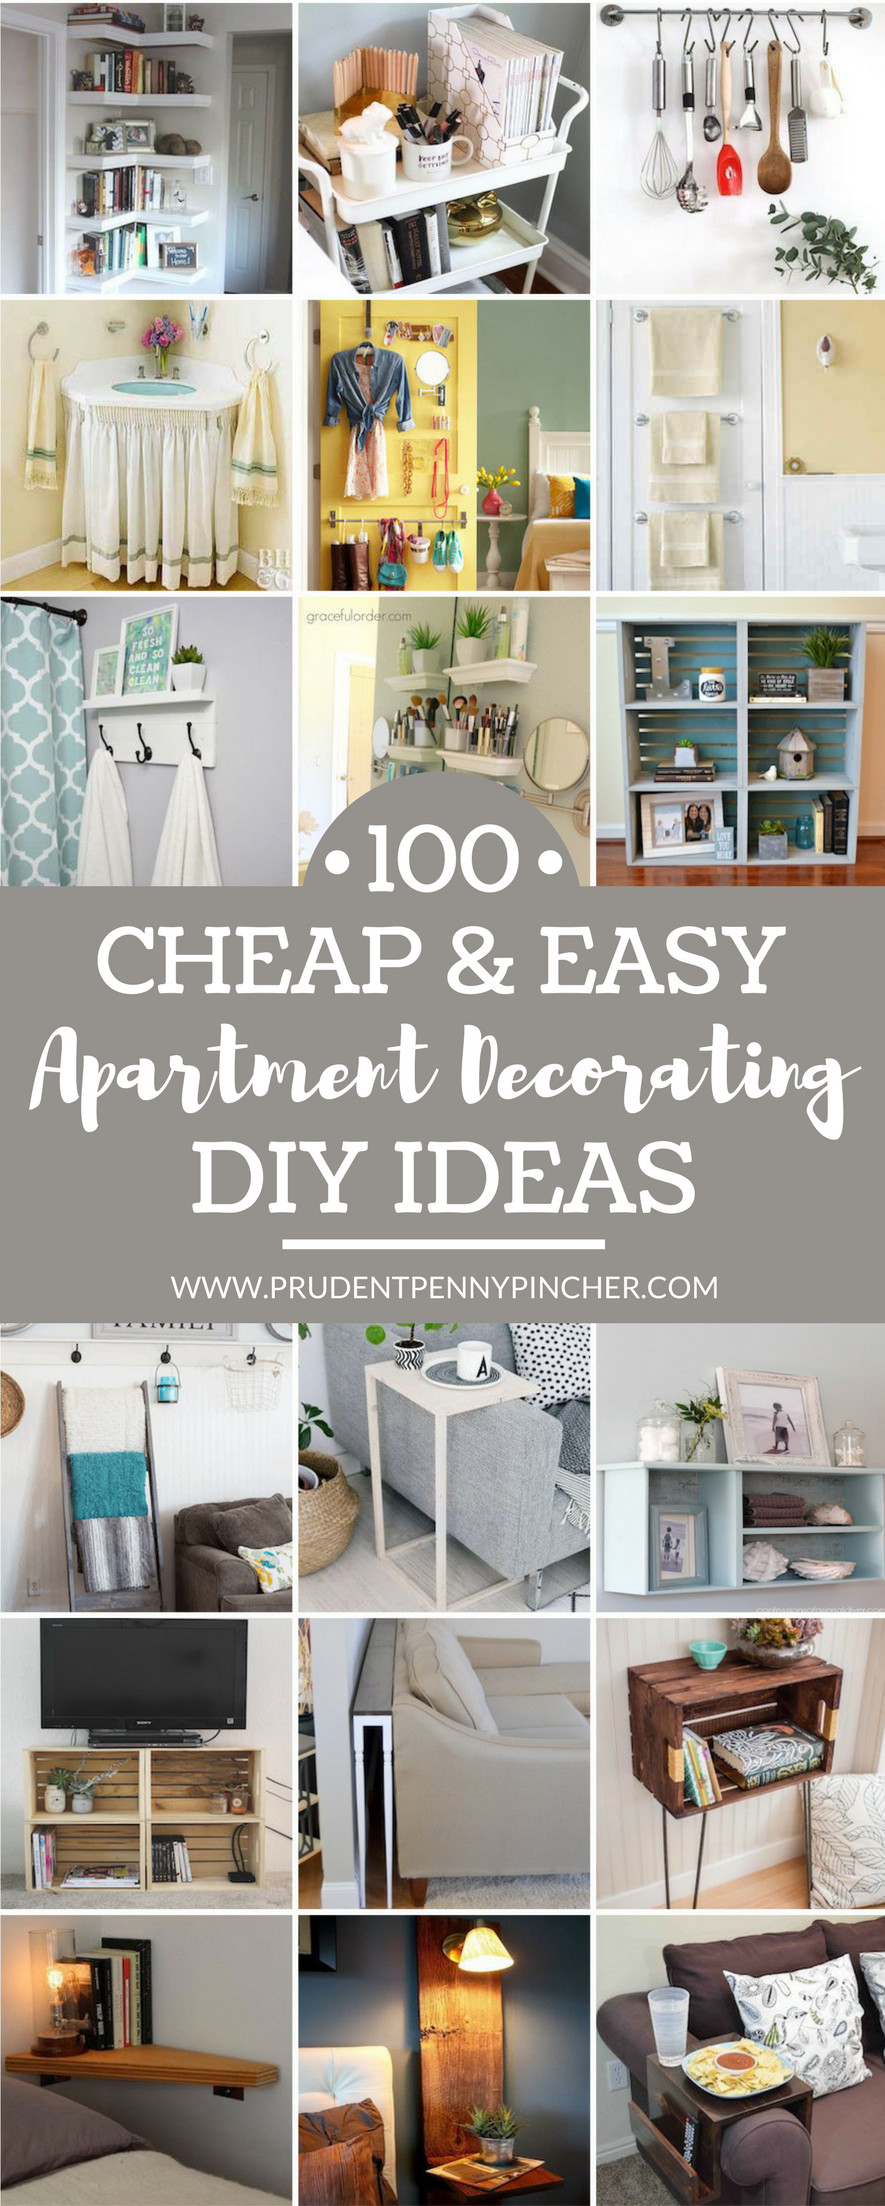 Organization Tips for Bedroom Elegant 100 Cheap and Easy Diy Apartment Decorating Ideas